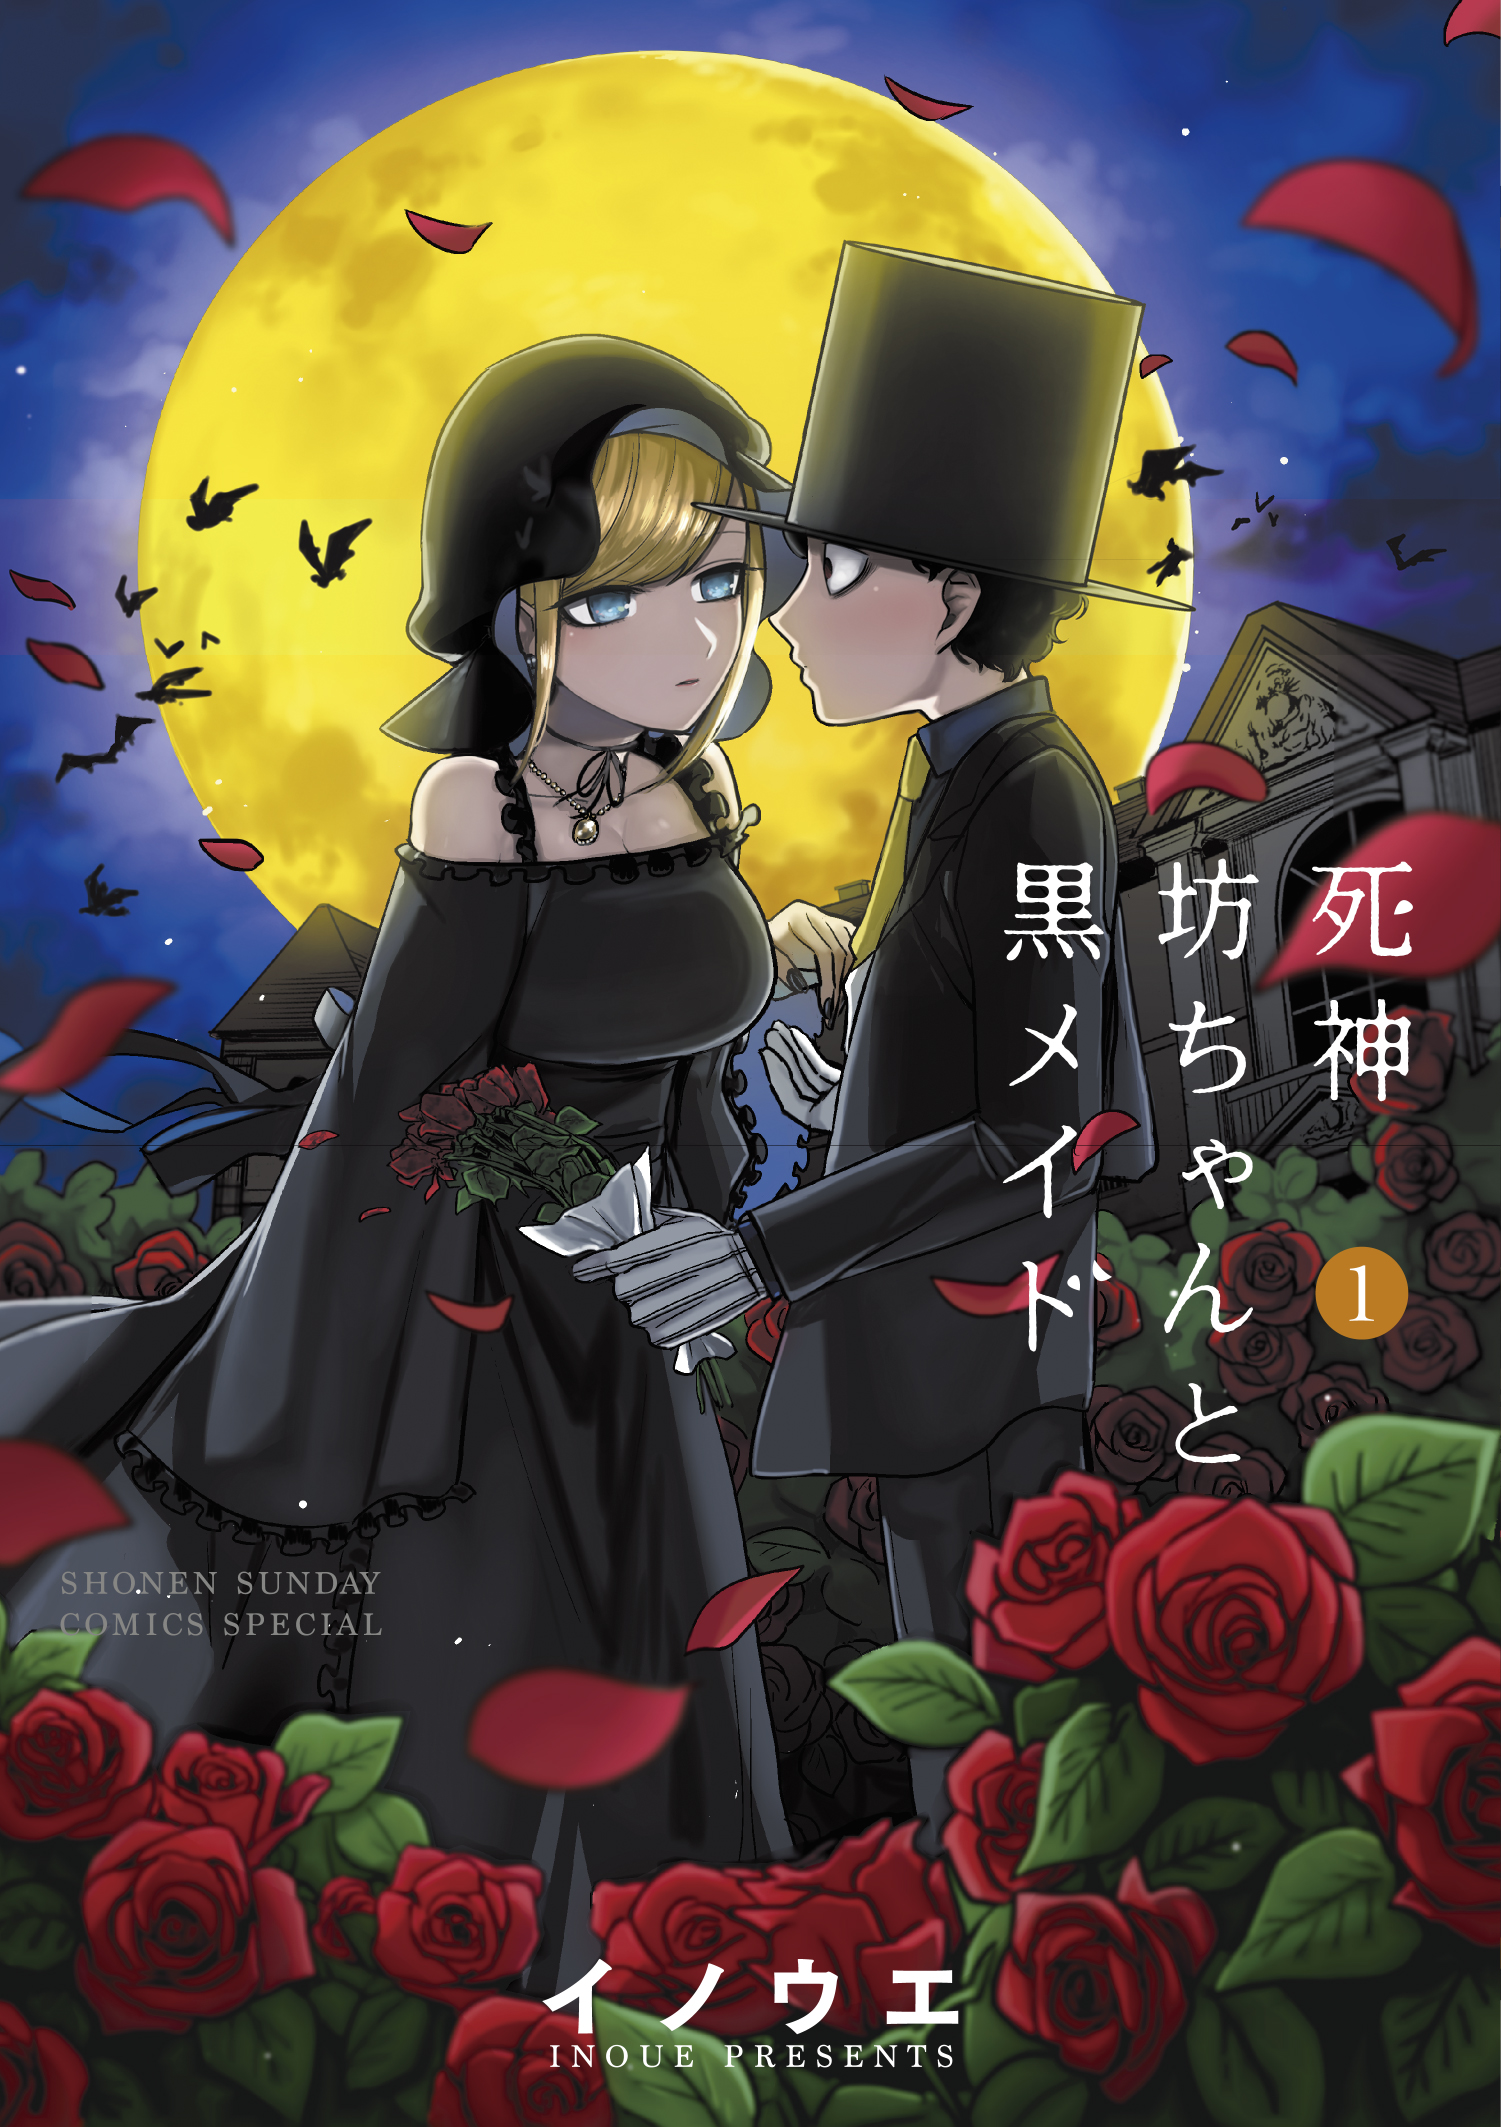 "Shinigami-Bocchan-to-Kuro-Maid-The-Duke-of-Death-and-His-Maid-KV Tantalizing Love Comedy ""Shinigami Bocchan to Kuro Maid"" (The Duke of Death and His Maid) Arrives in 2021!"